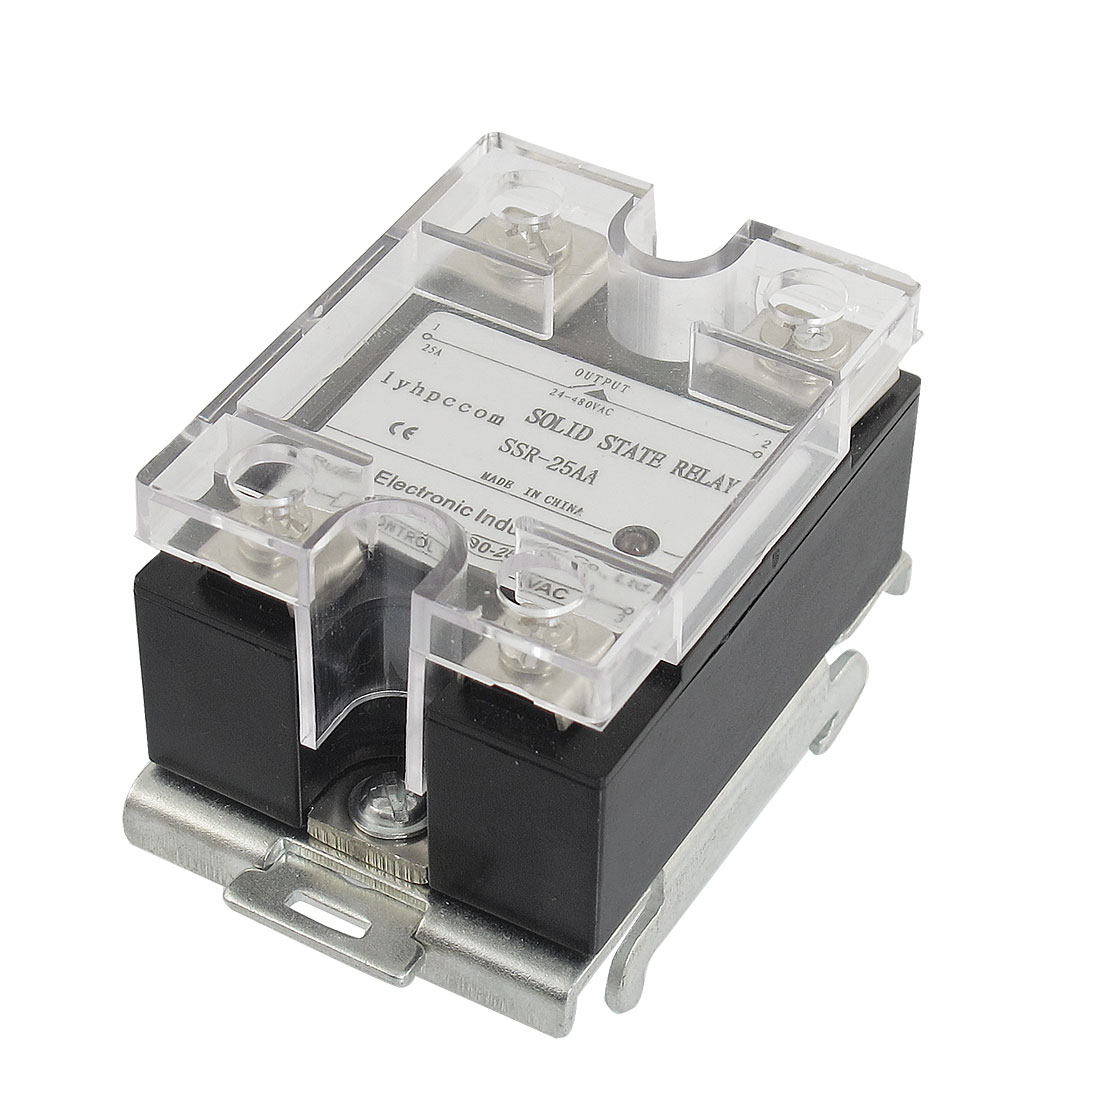 SSR-25AA 25A 90-280V 24-480V AC Solid State Relay Black Clear w Rail Mount Base